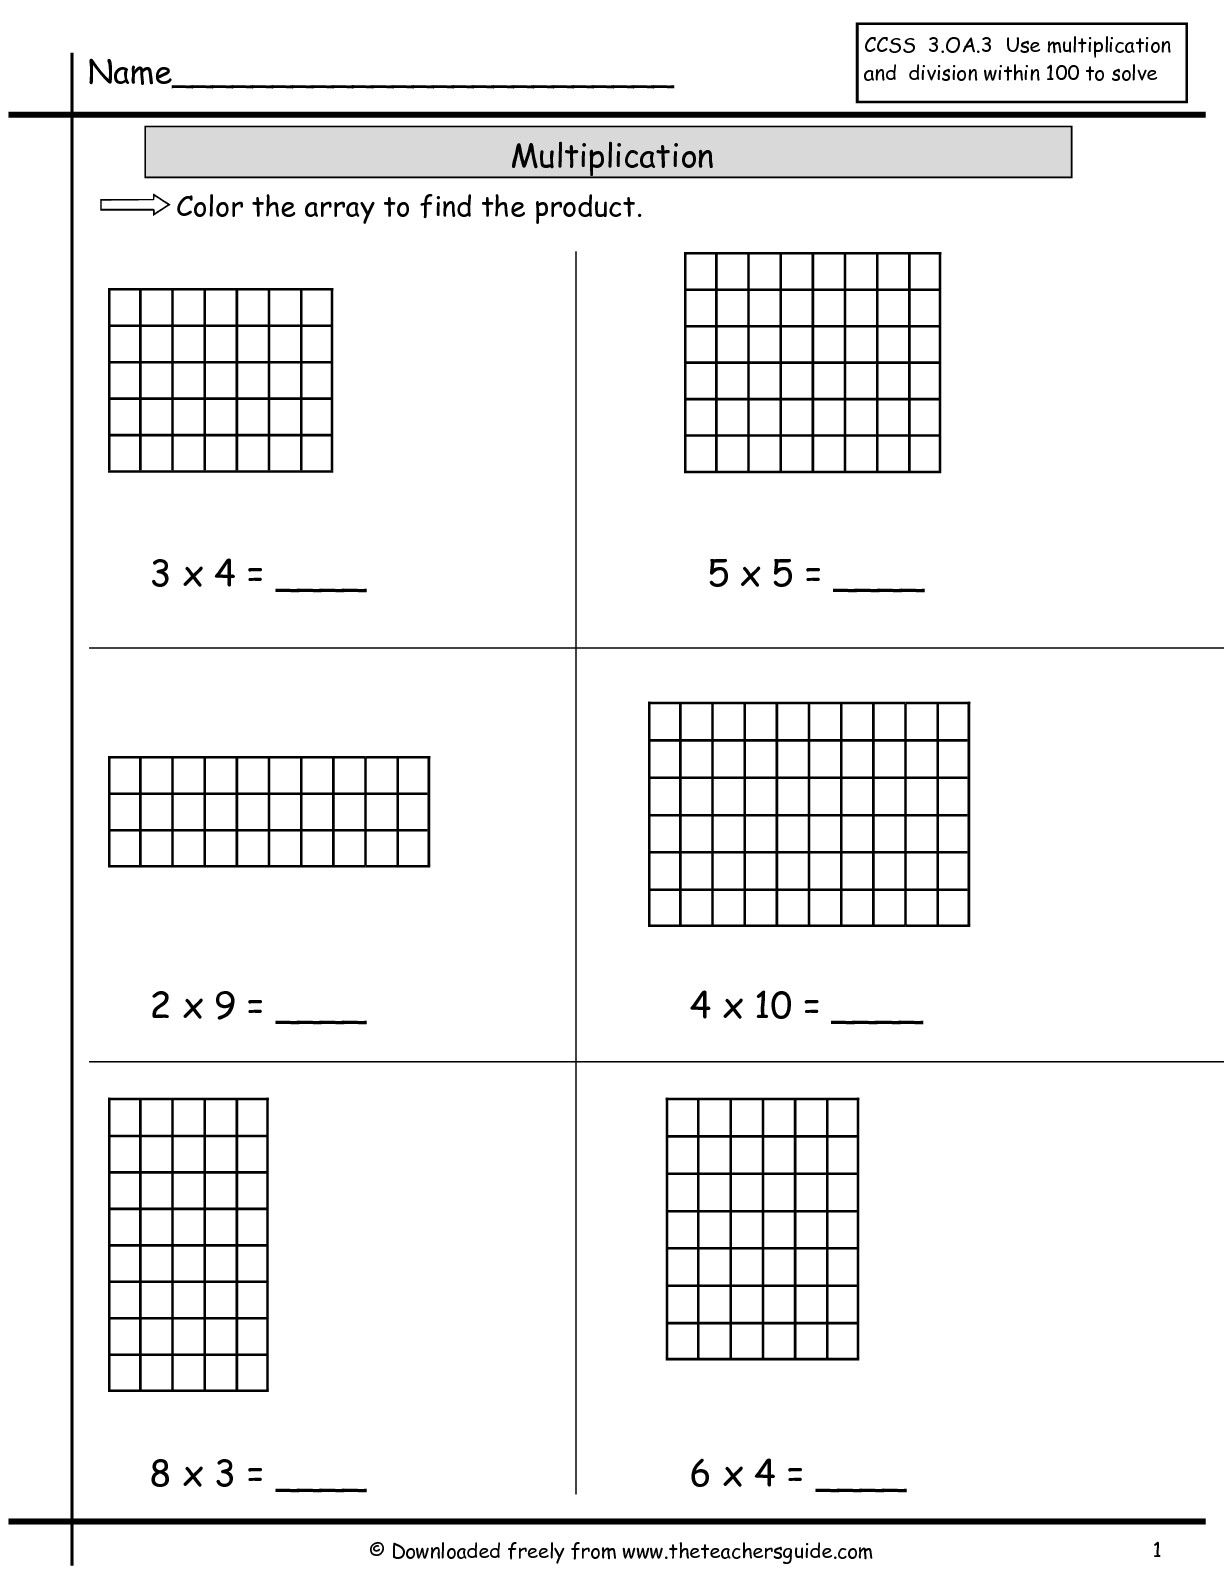 Multiplication Worksheets Area Model